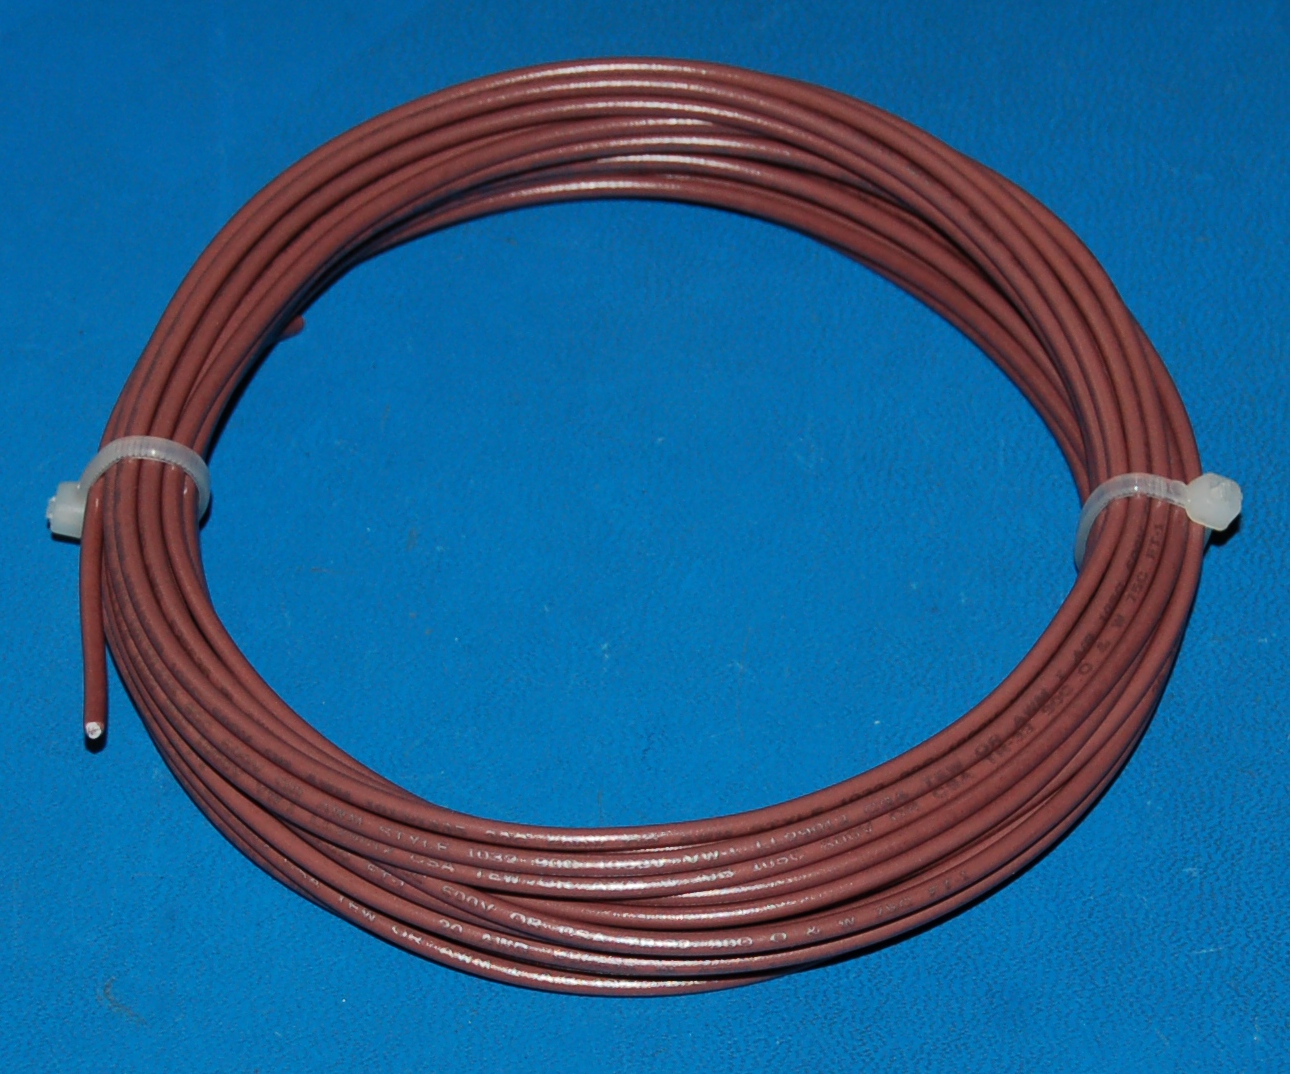 Solid Tinned Copper Wire, 600V, #20 AWG x 25' (Brown)